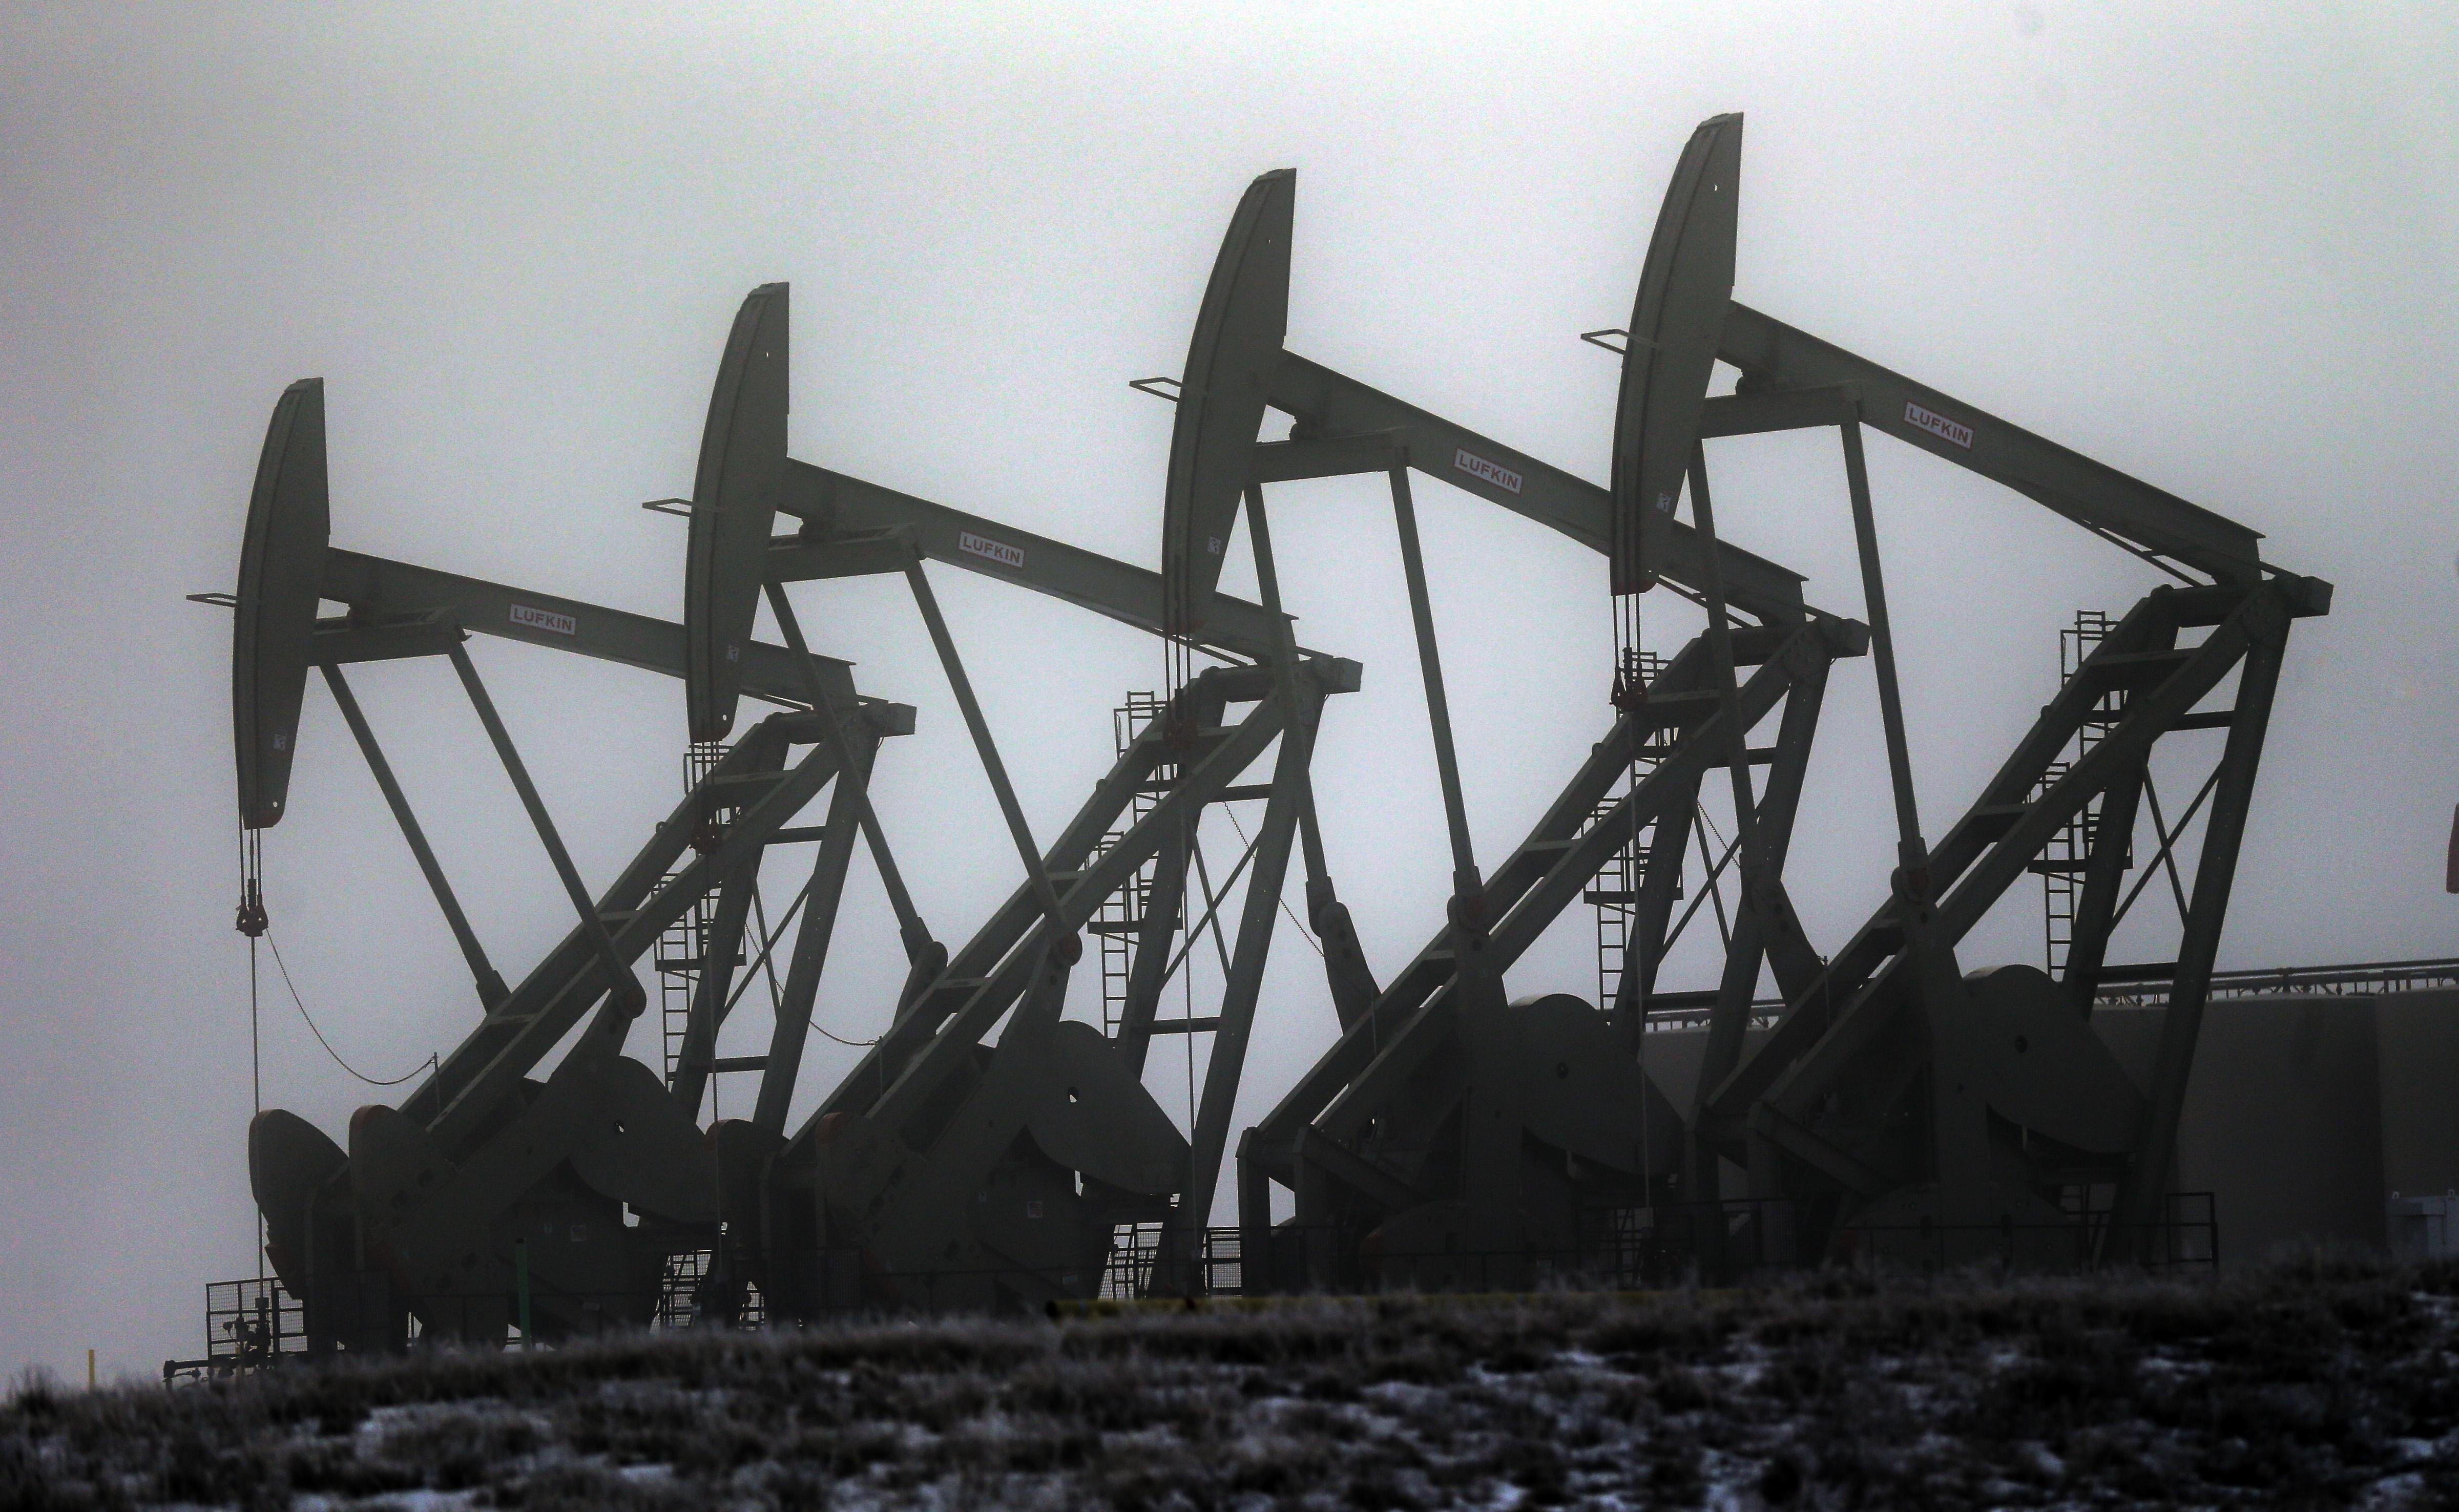 Oil producers push to export US crude even as prices drop